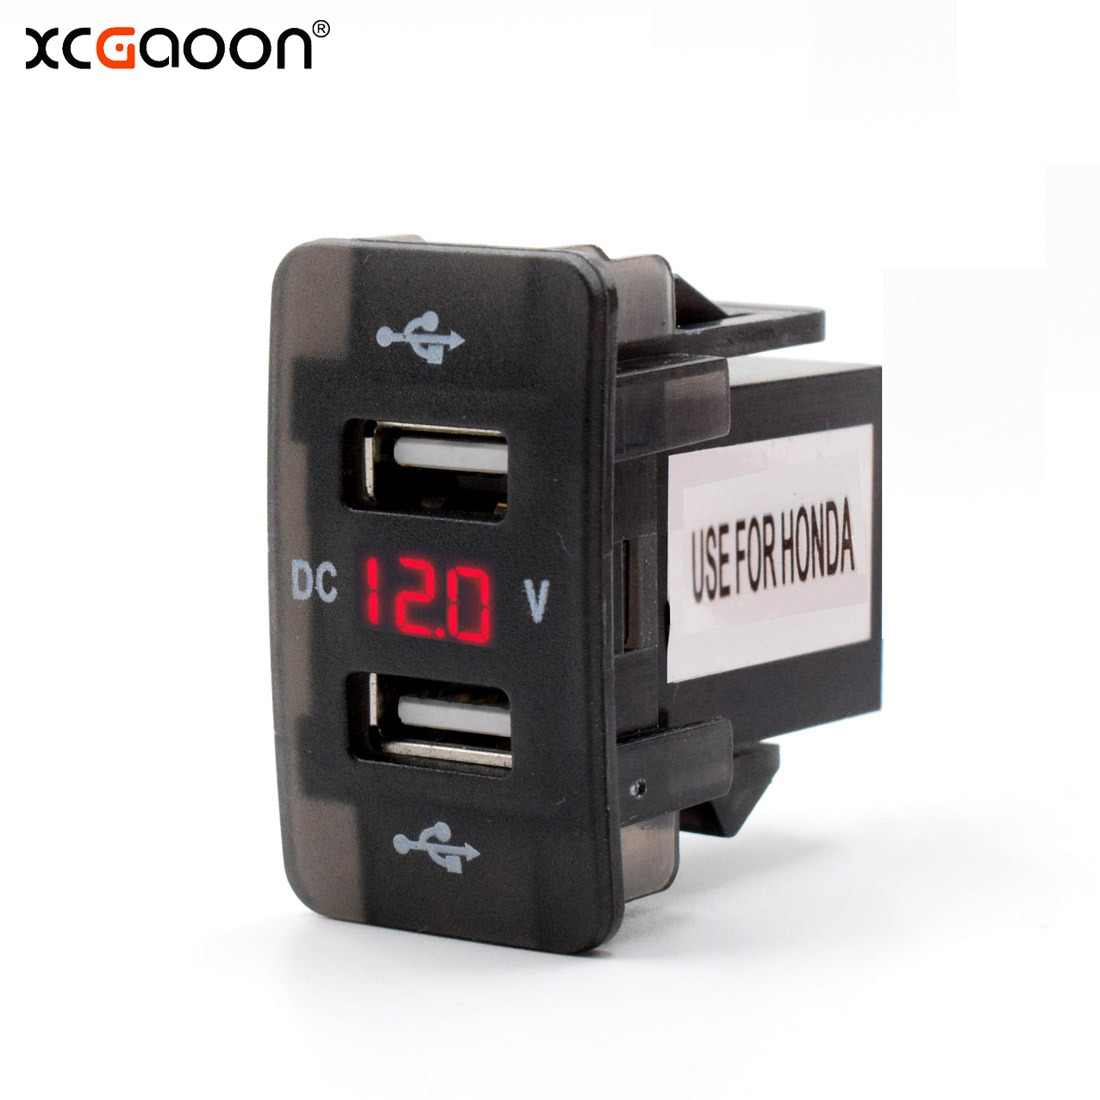 XCGaoon Special 5V 4.2A Dual USB Interface Socket USB Car Charger Adapter with LED Voltmeter for TOYOTA / HONDA, DC-DC Converter